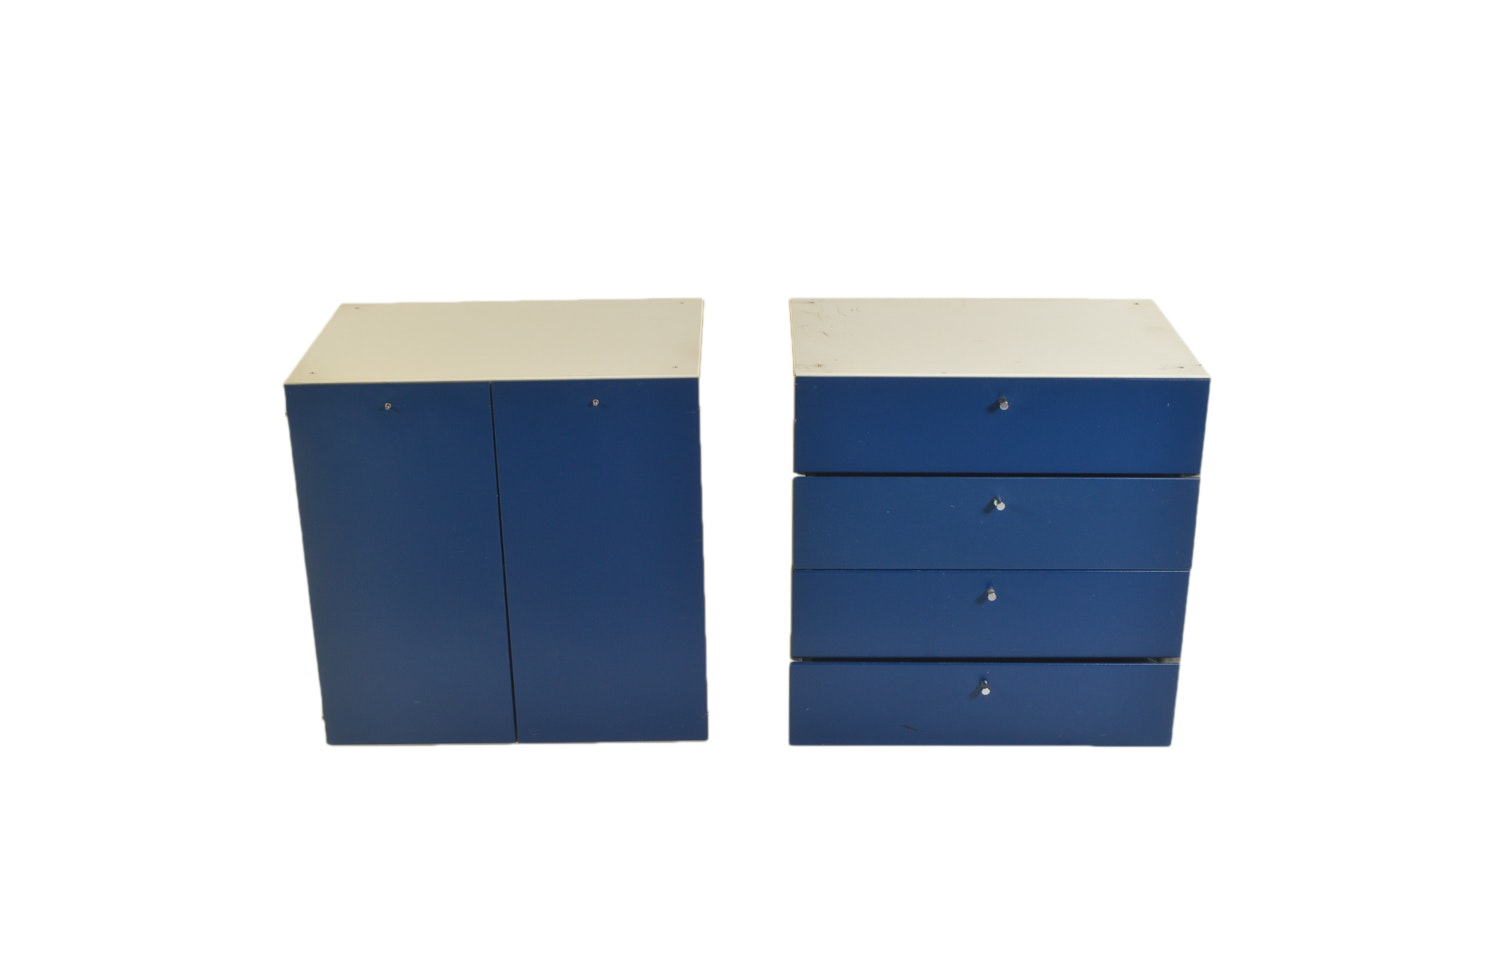 Blue and White Laminate Cabinet and Chest of Drawers